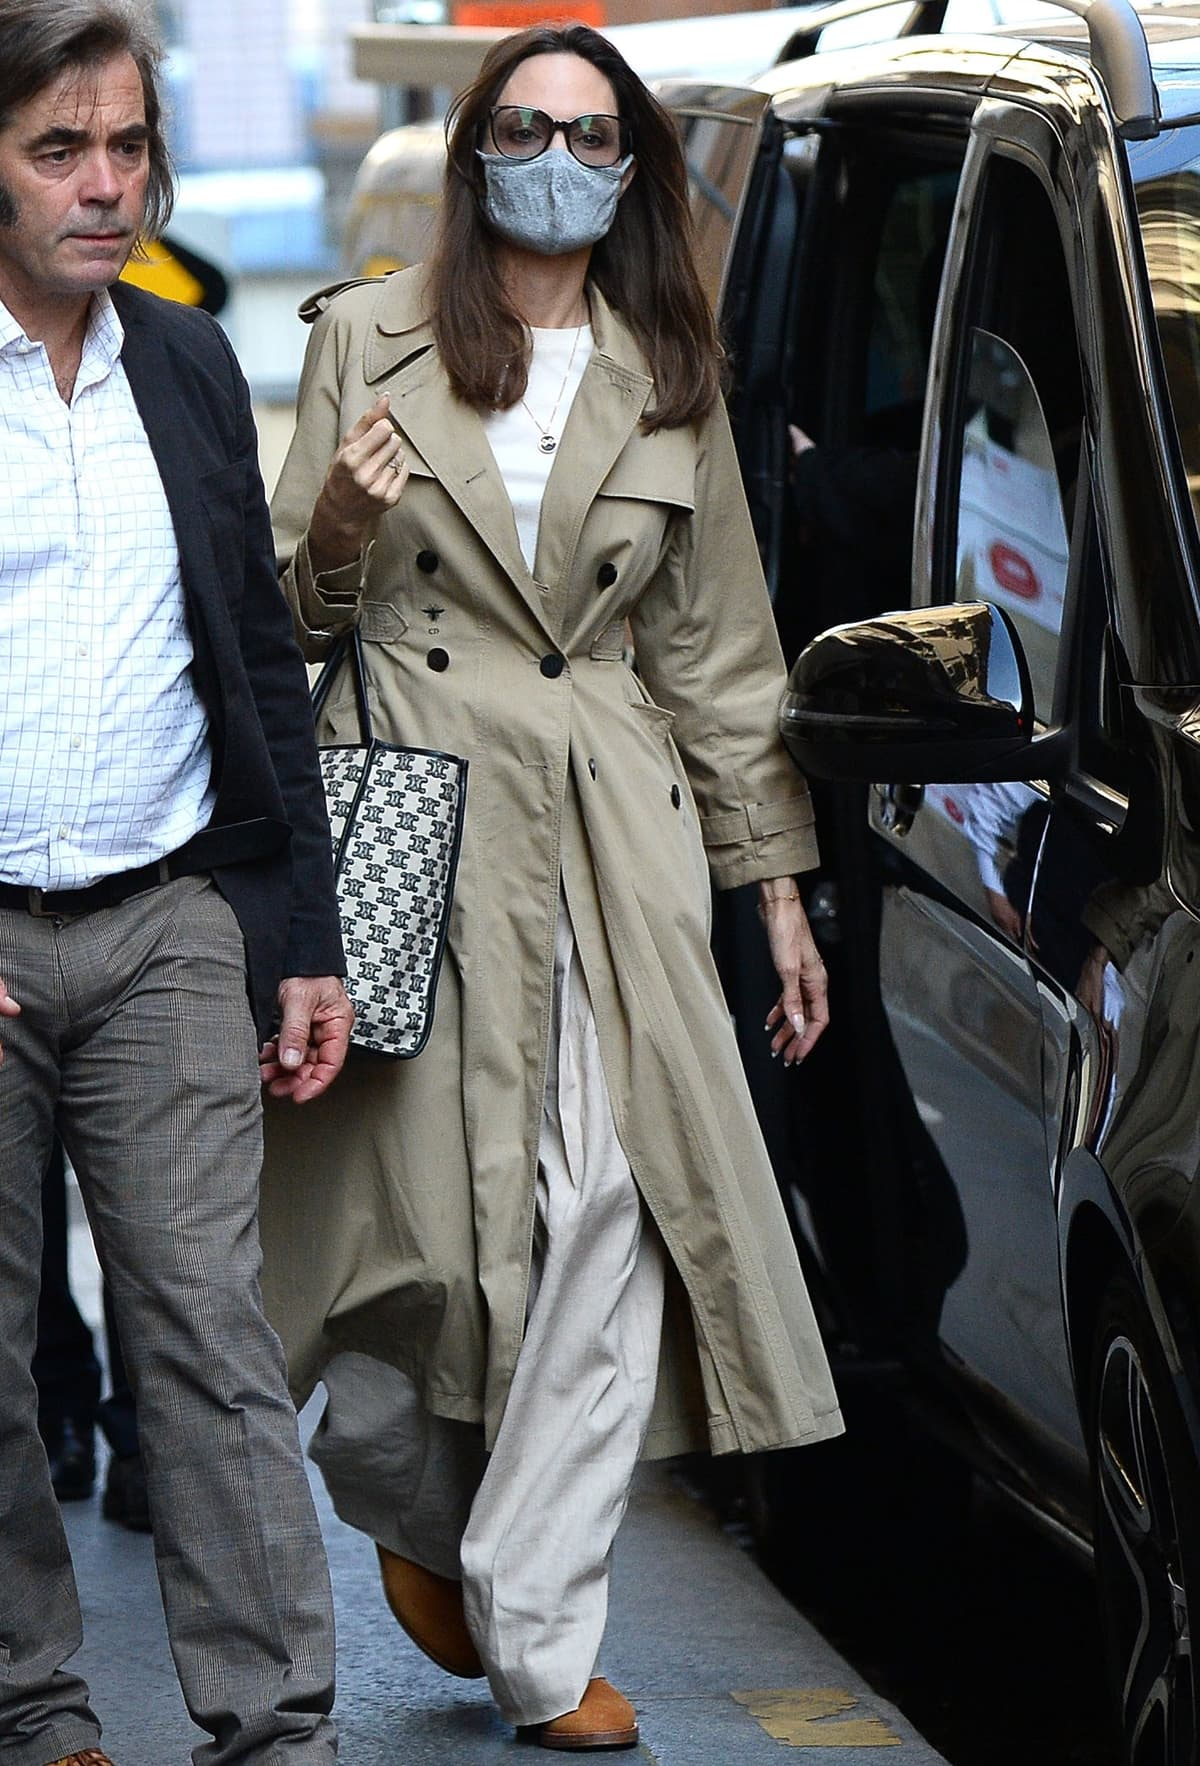 Angelina Jolie wears a Dior trench coat and totes a Celine Horizontal Cabas bag in textile with Triomphe embroidery outside her hotel in Paris